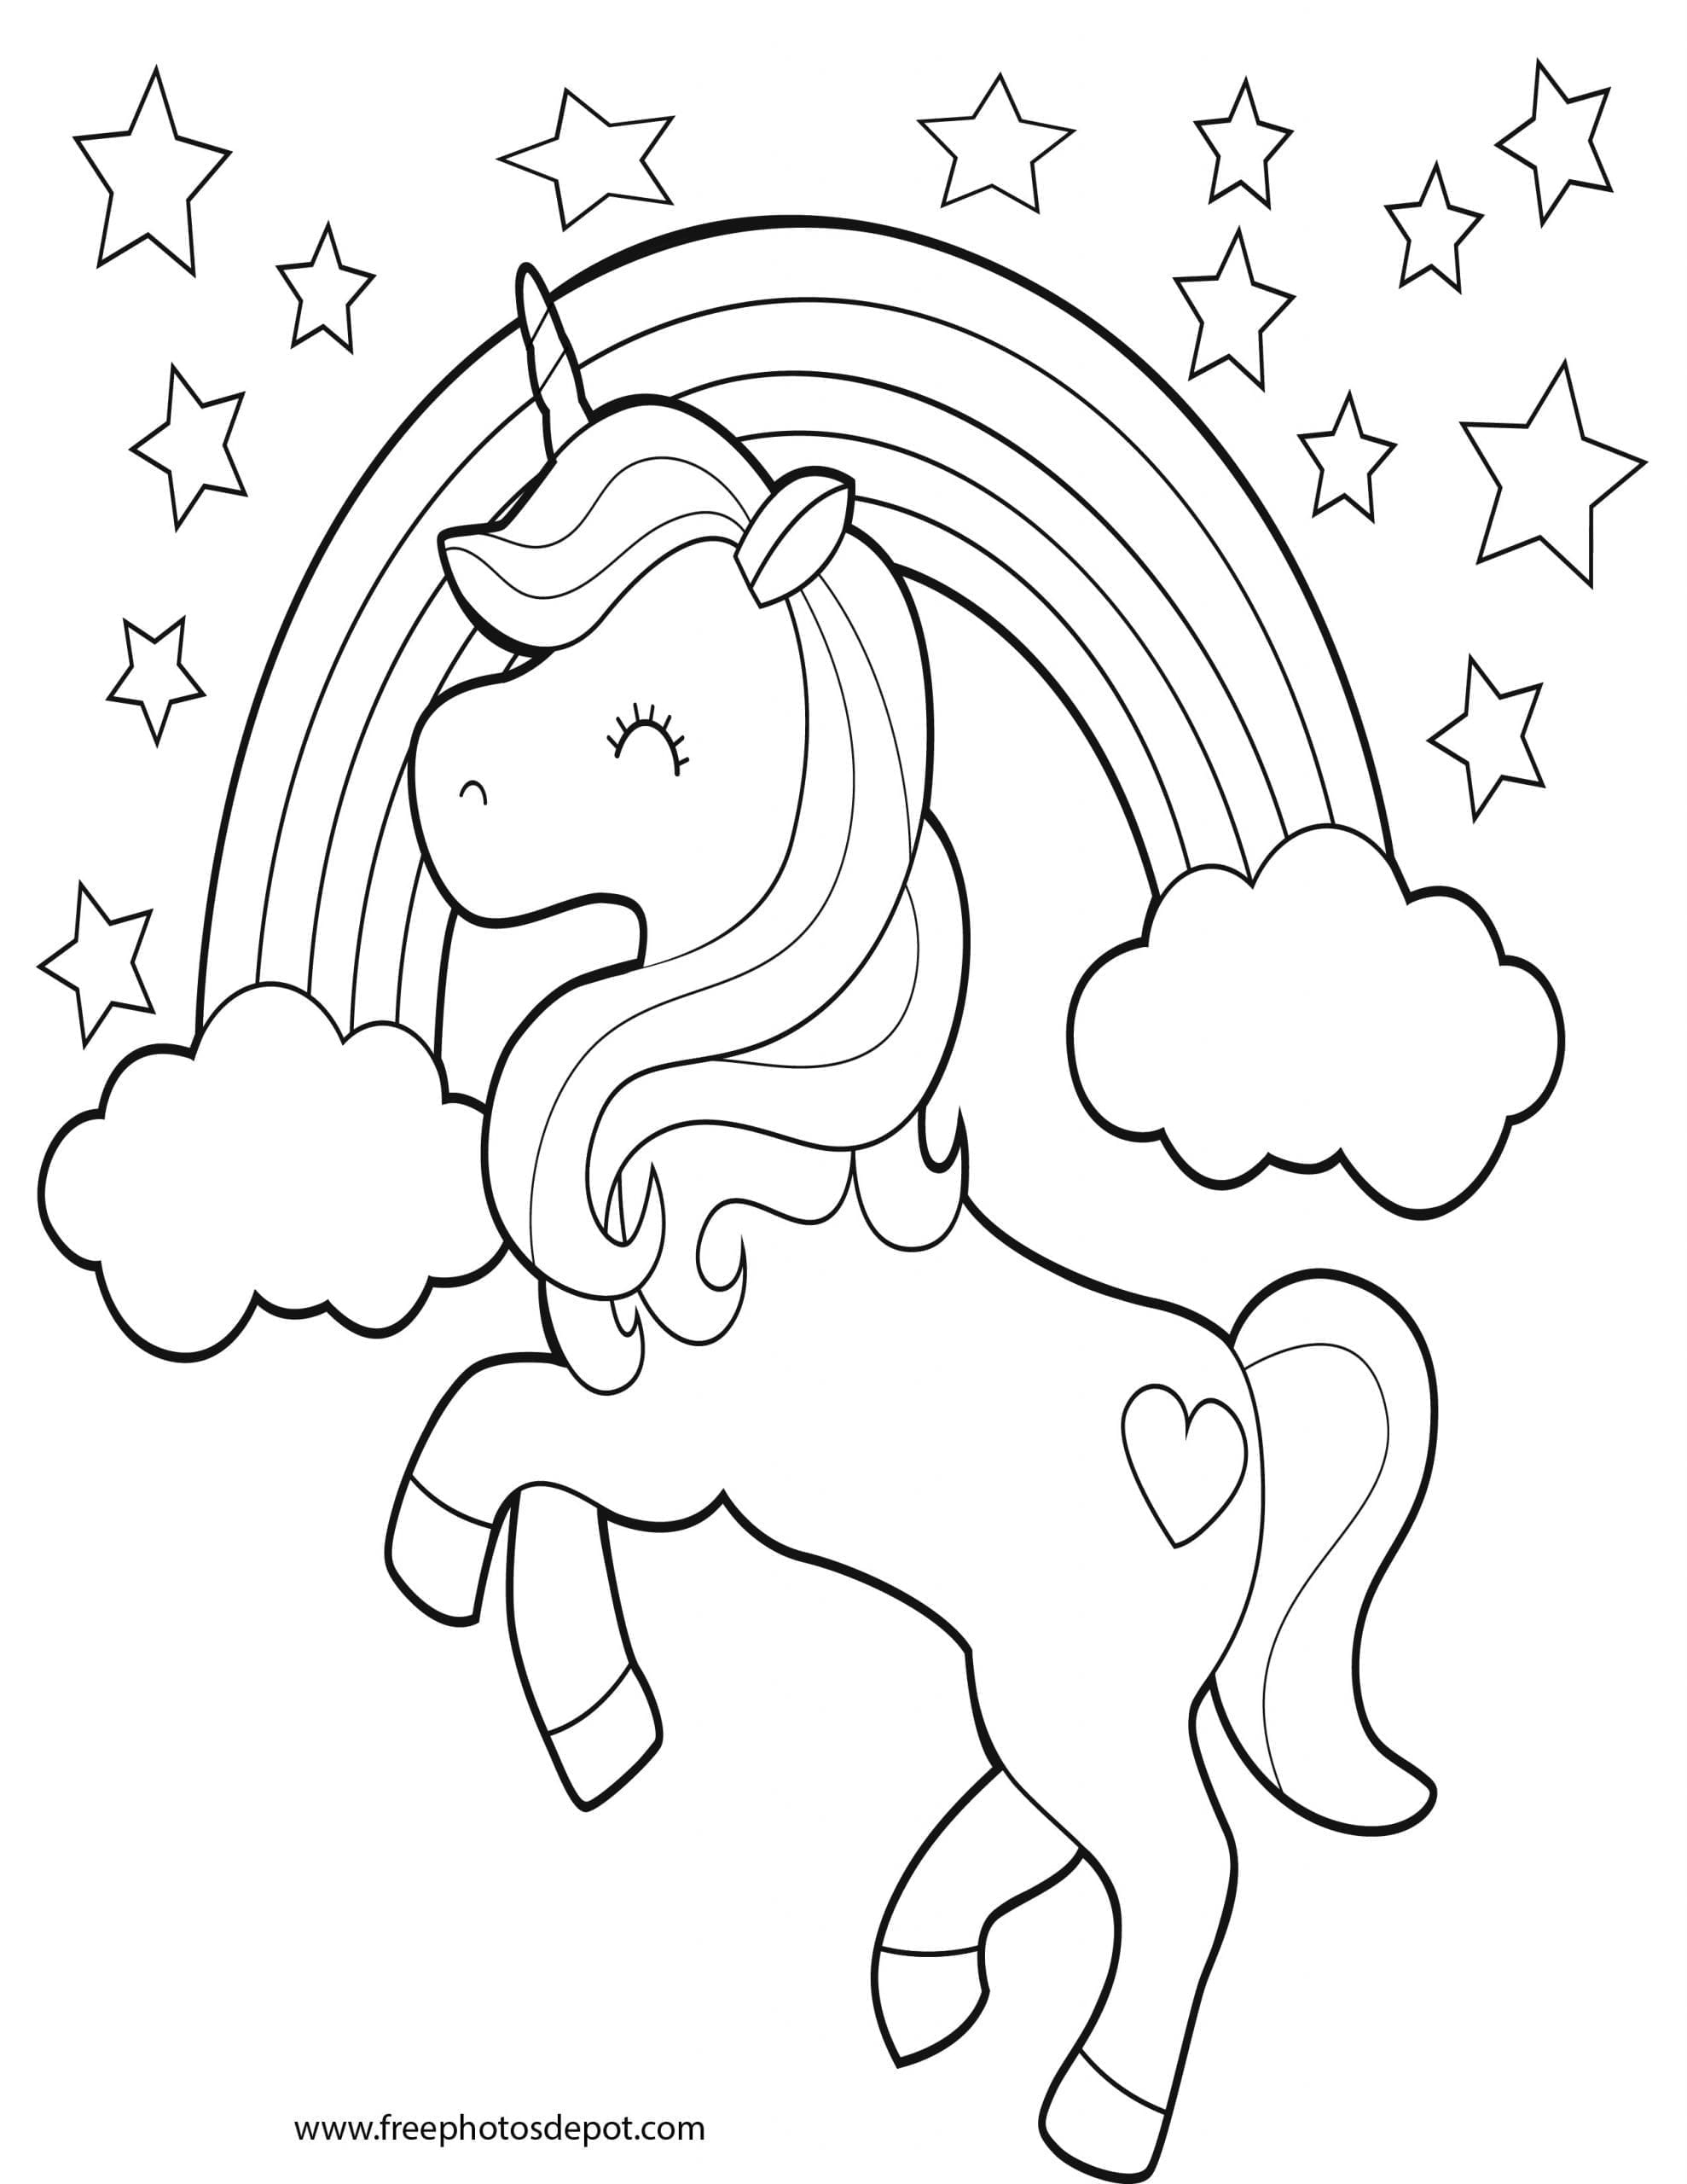 unicorn pictures coloring sheet unicorn pages to color coloring unicorn pictures sheet